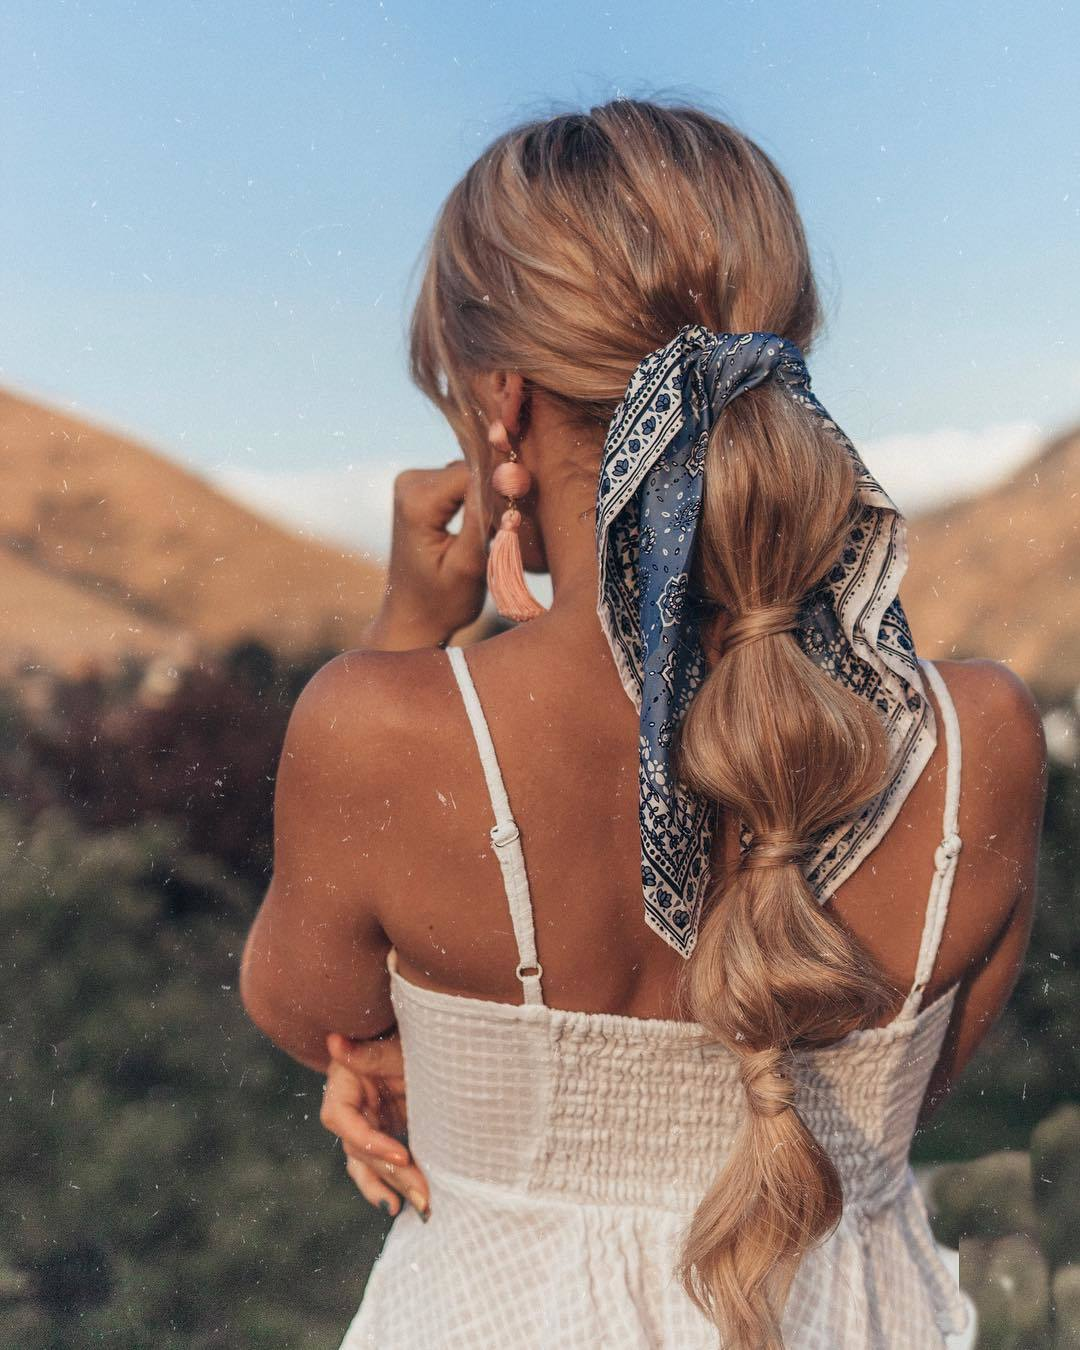 Bandana hairstyles: Woman with honey blonde long hair styled into a bubble ponytail with bandana around it